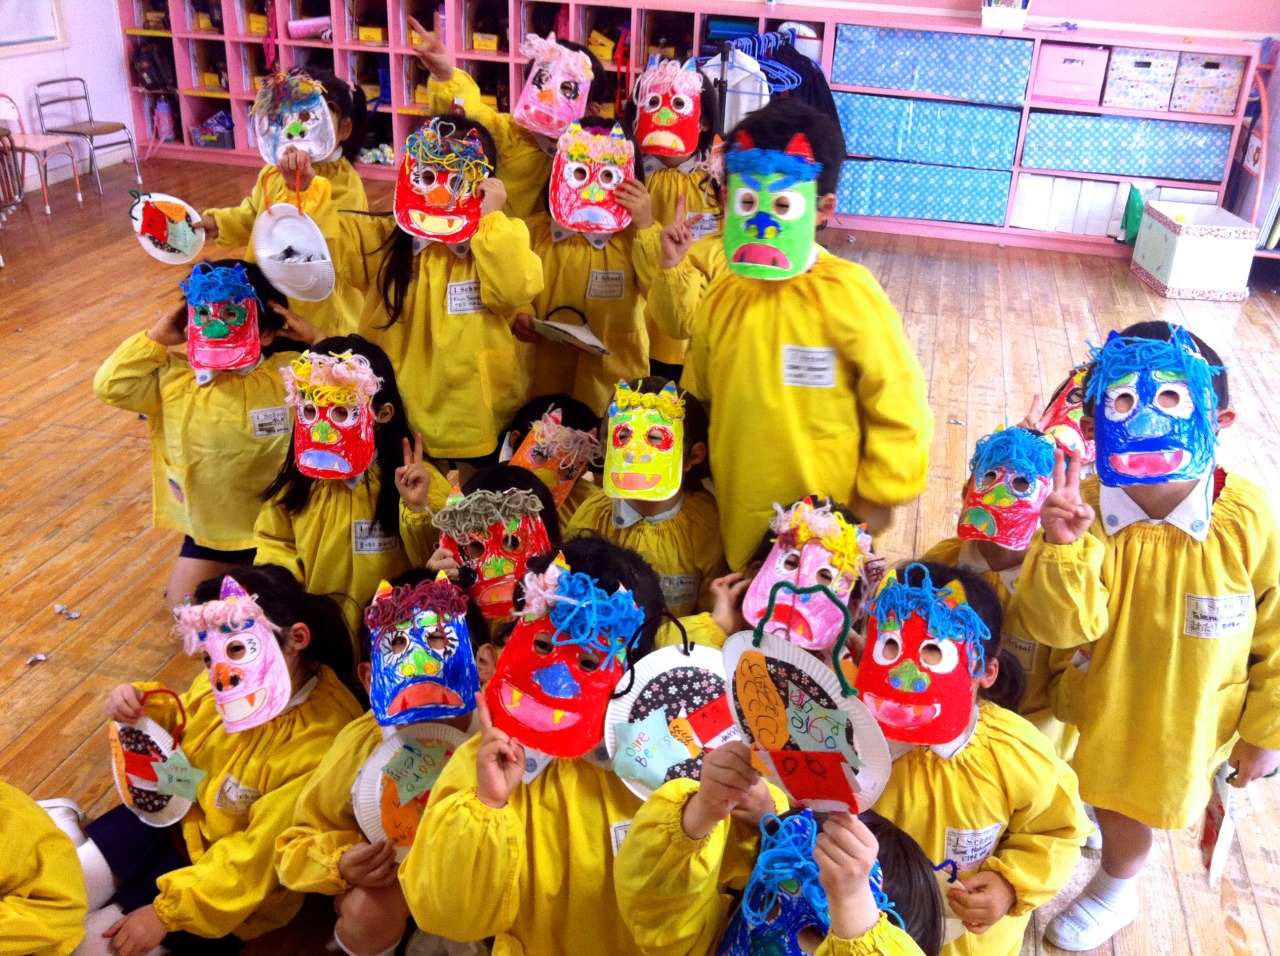 Happy Setsubun from these endearing little ogres!